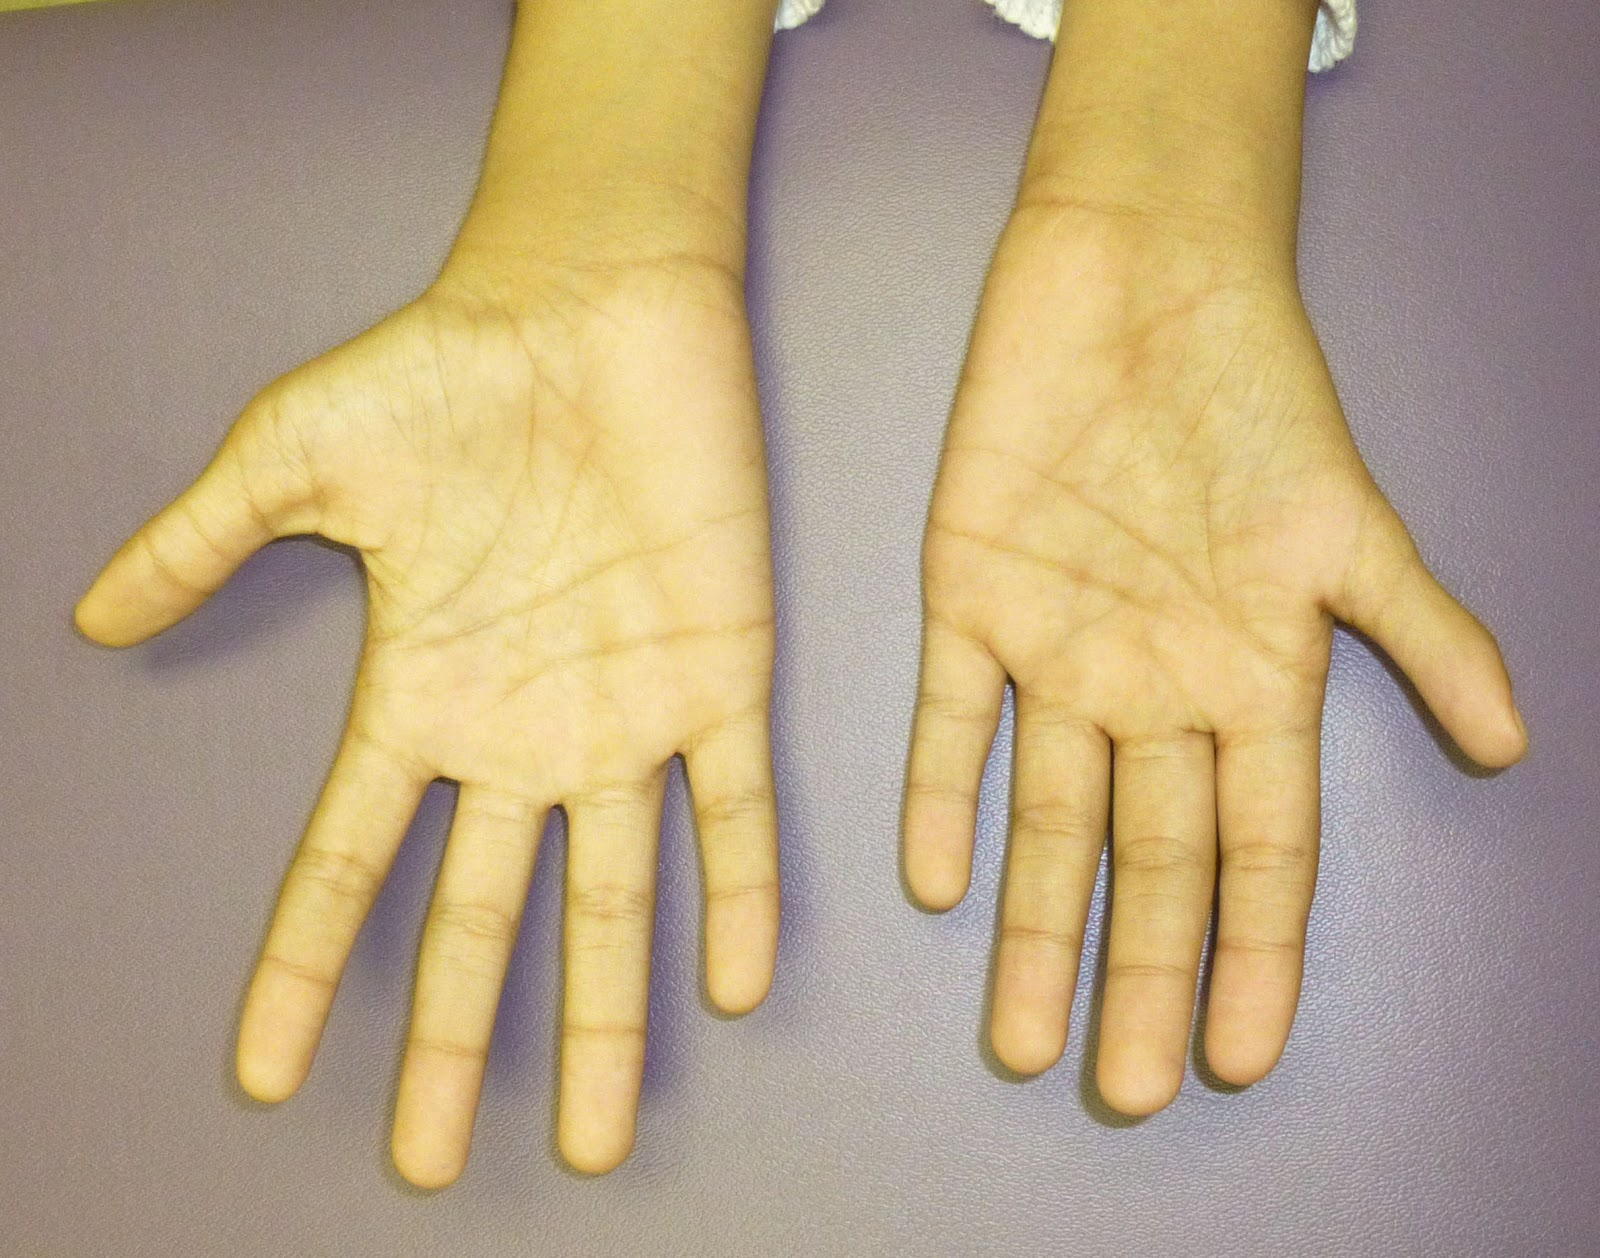 Small Thumbs Congenital Hand And Arm Differences